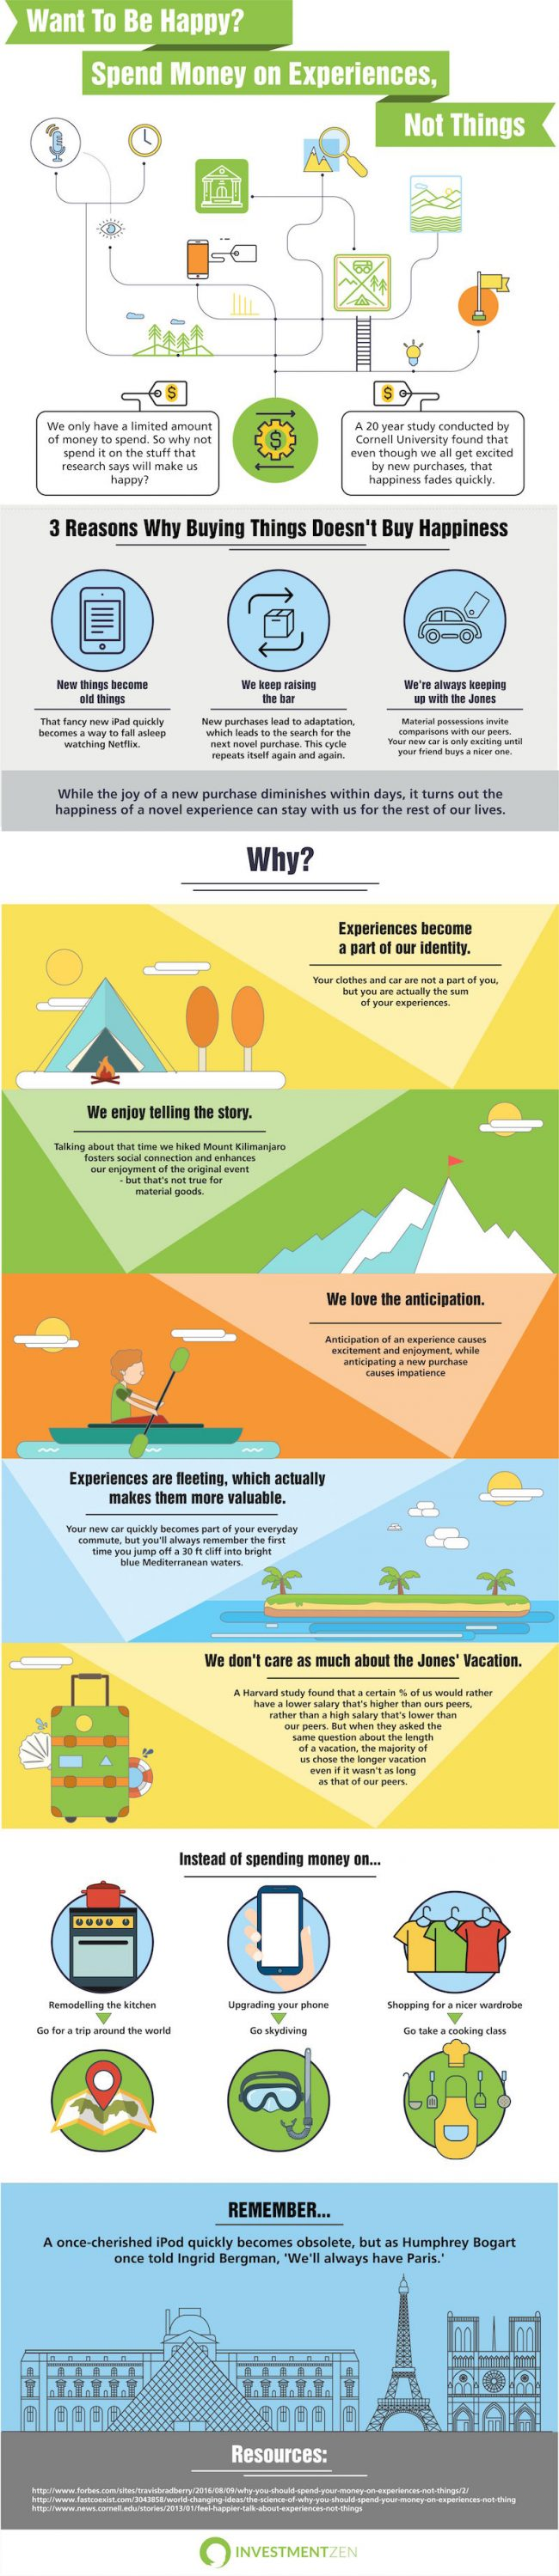 if-you-want-to-be-happy-spend-money-on-experiences_infographic-800